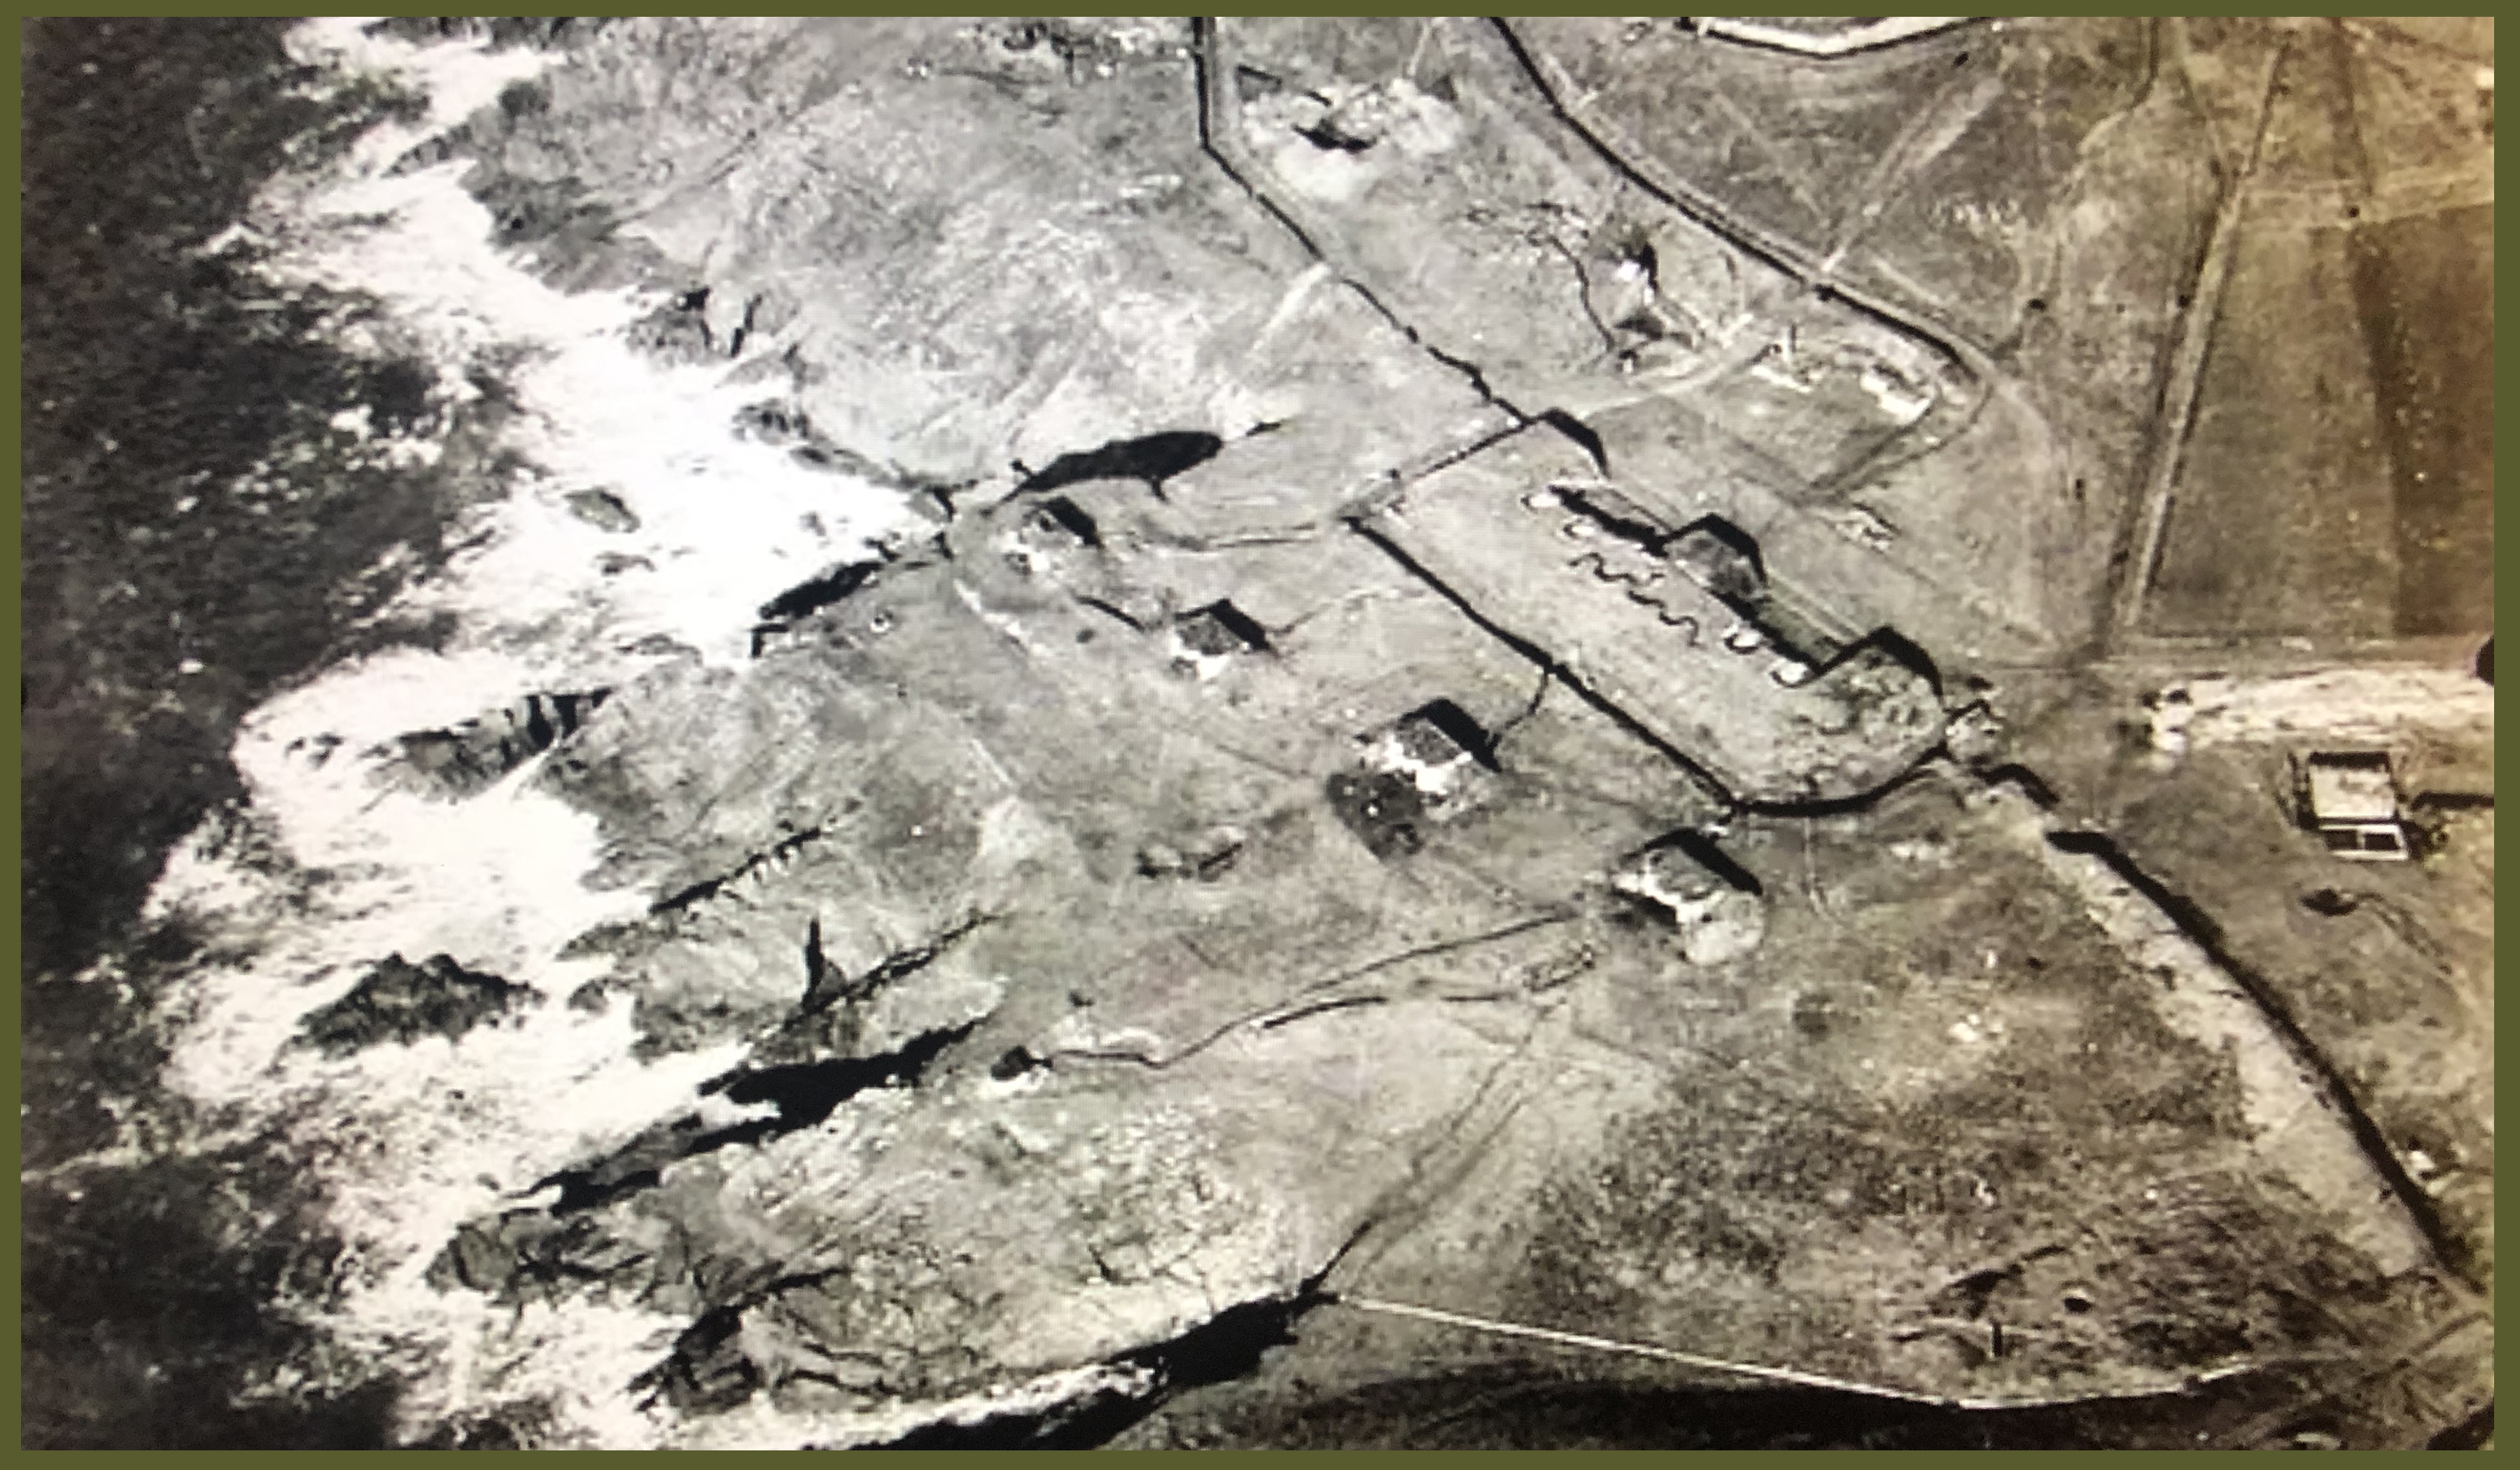 Fort Toulbroch from the air